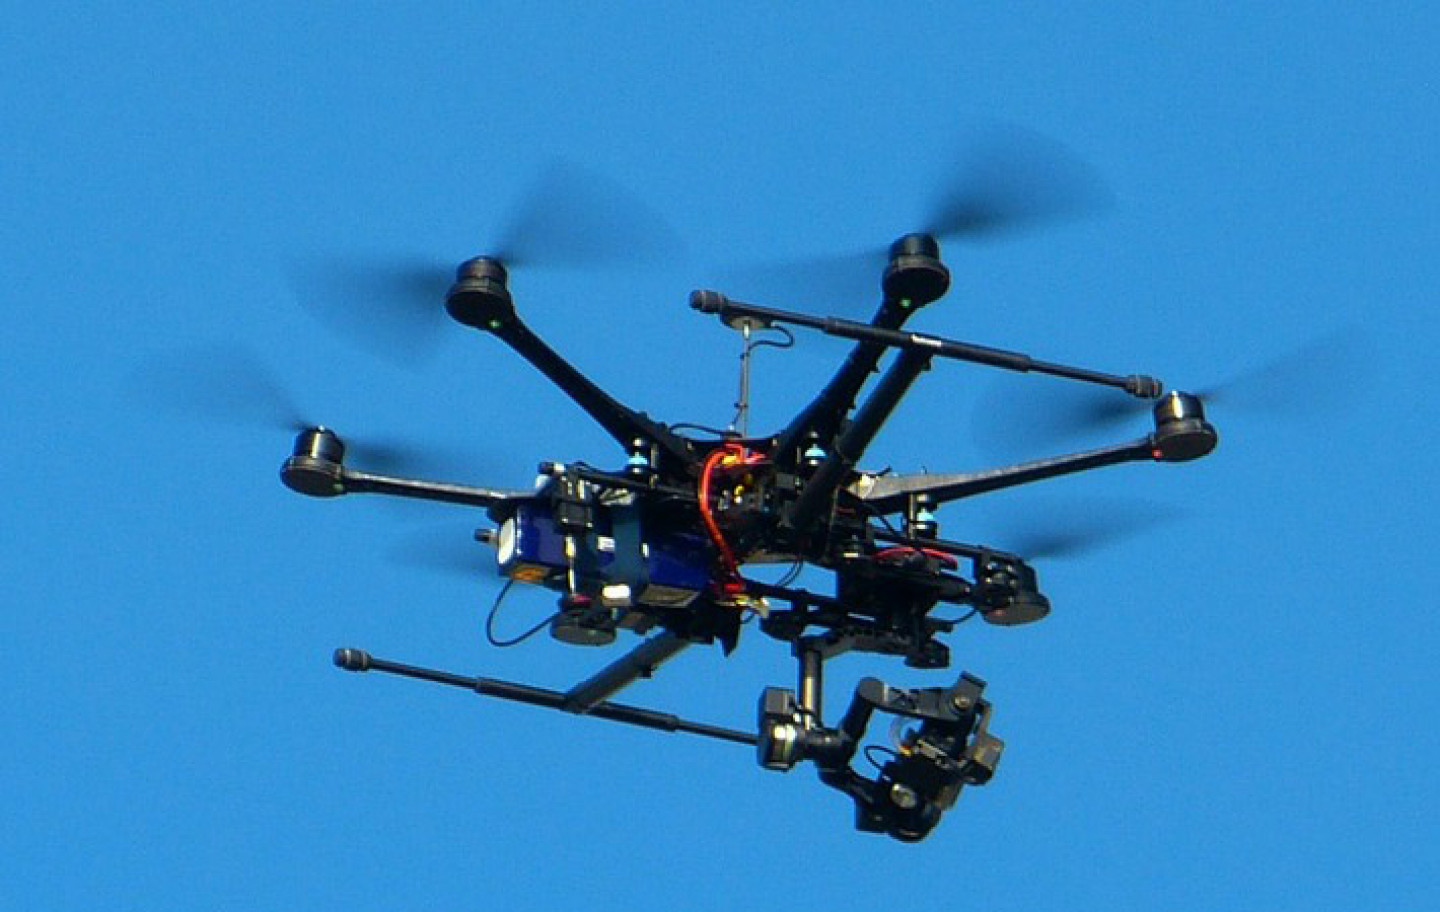 air-monitoring-hexacopter-quadcopter-4789a6-1024